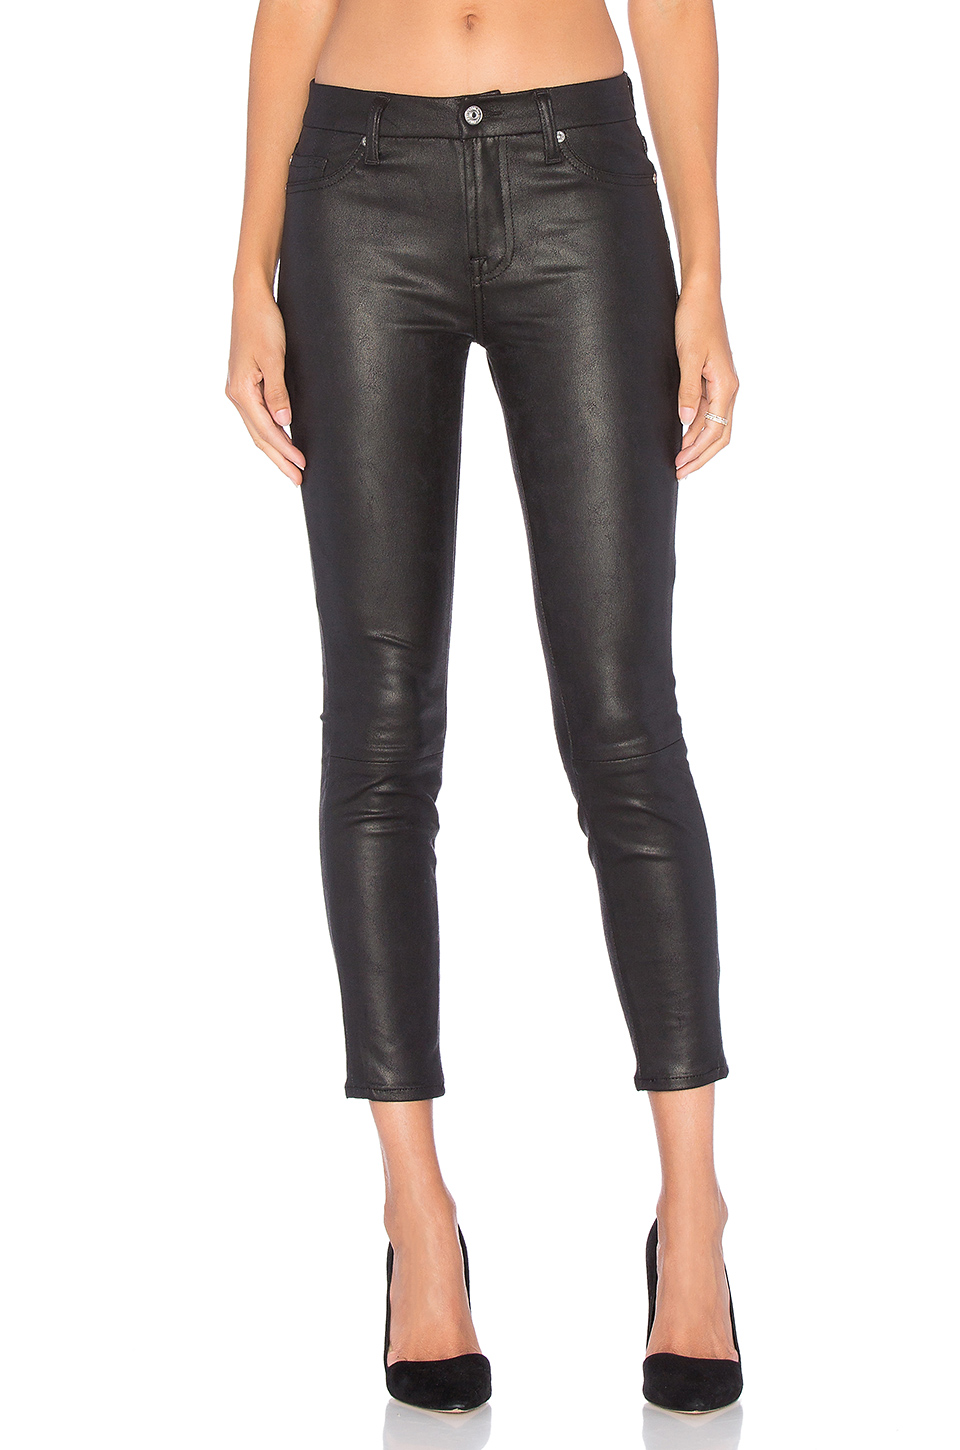 7 For All Mankind Knee Seam Skinny In Black